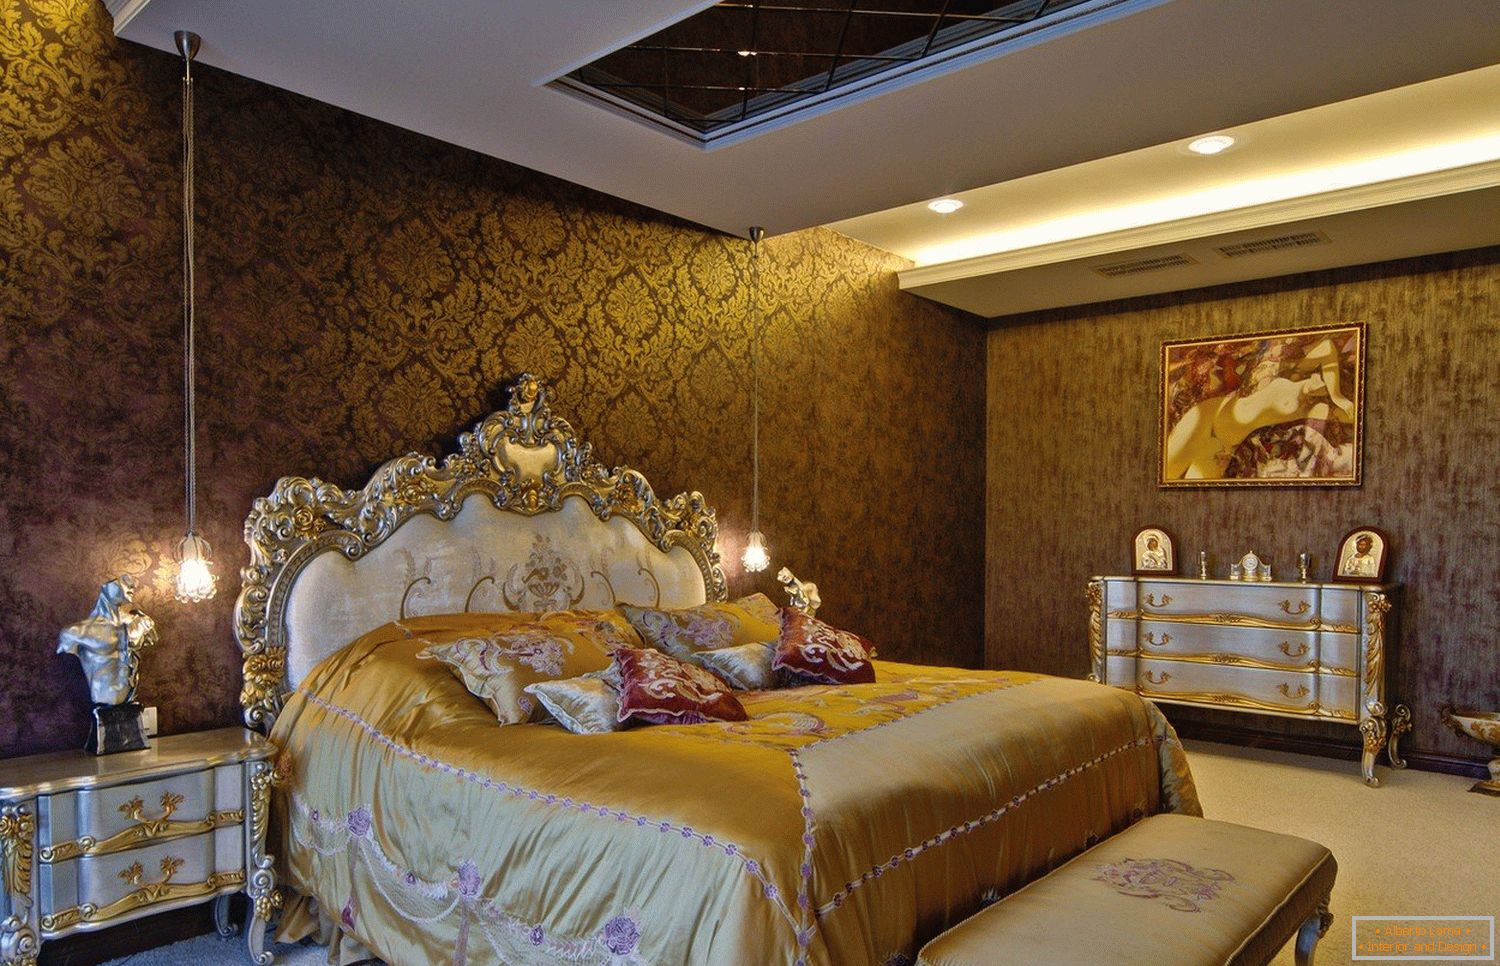 Golden Tones in Bedroom Design